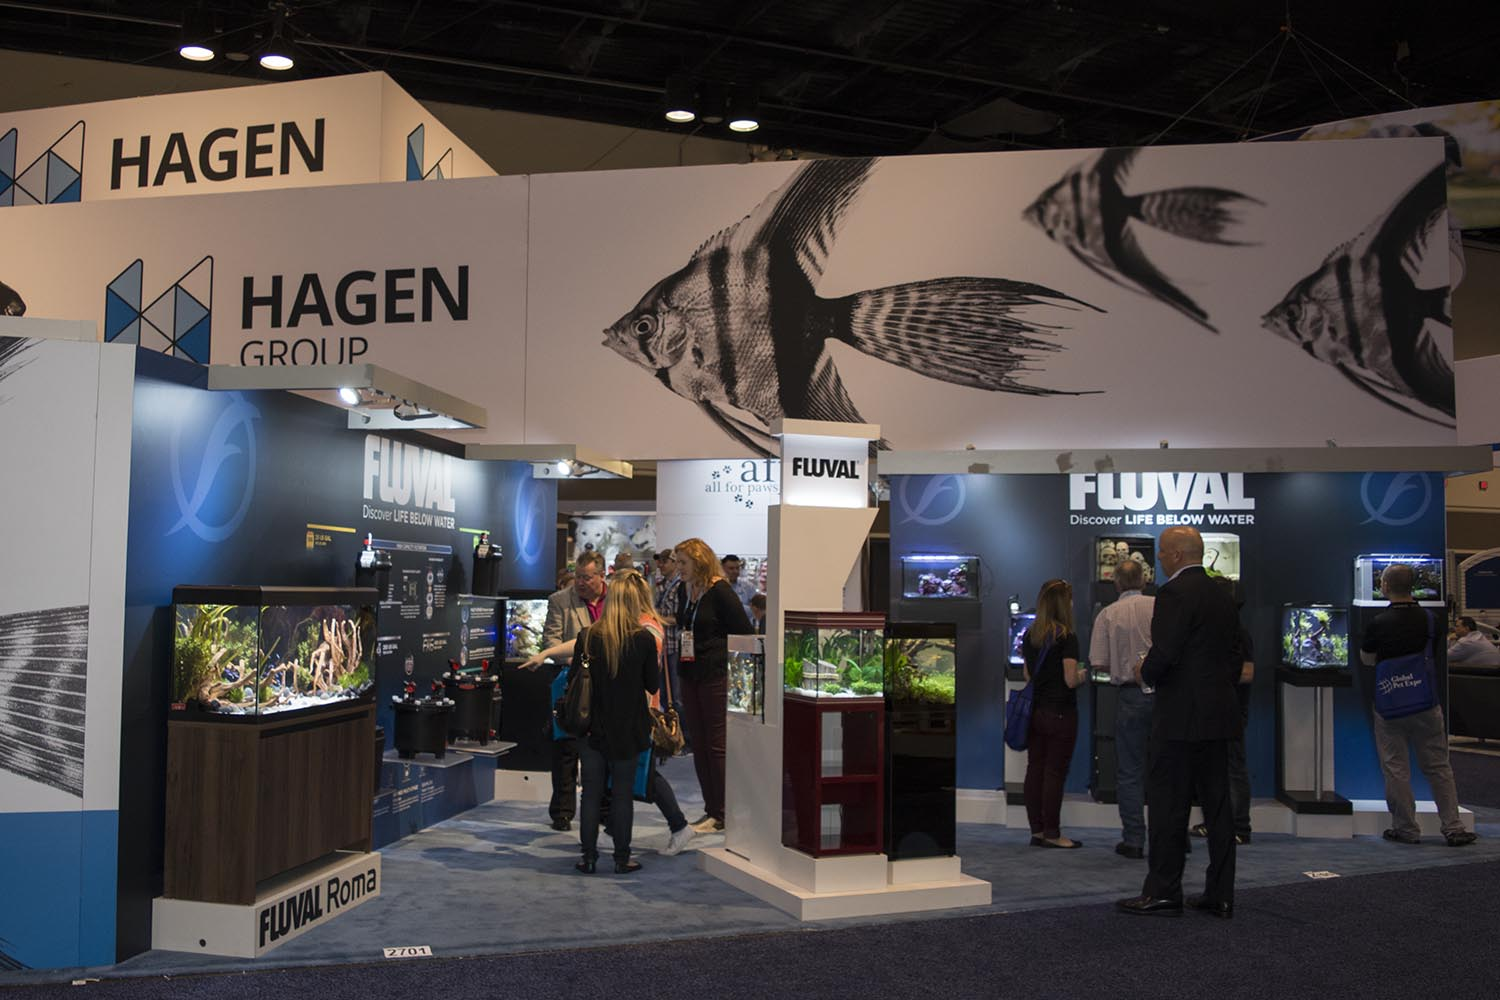 Hagen Group's expansive booth featuring aquariums, filters, and other accessories from Fluval Aquatics.